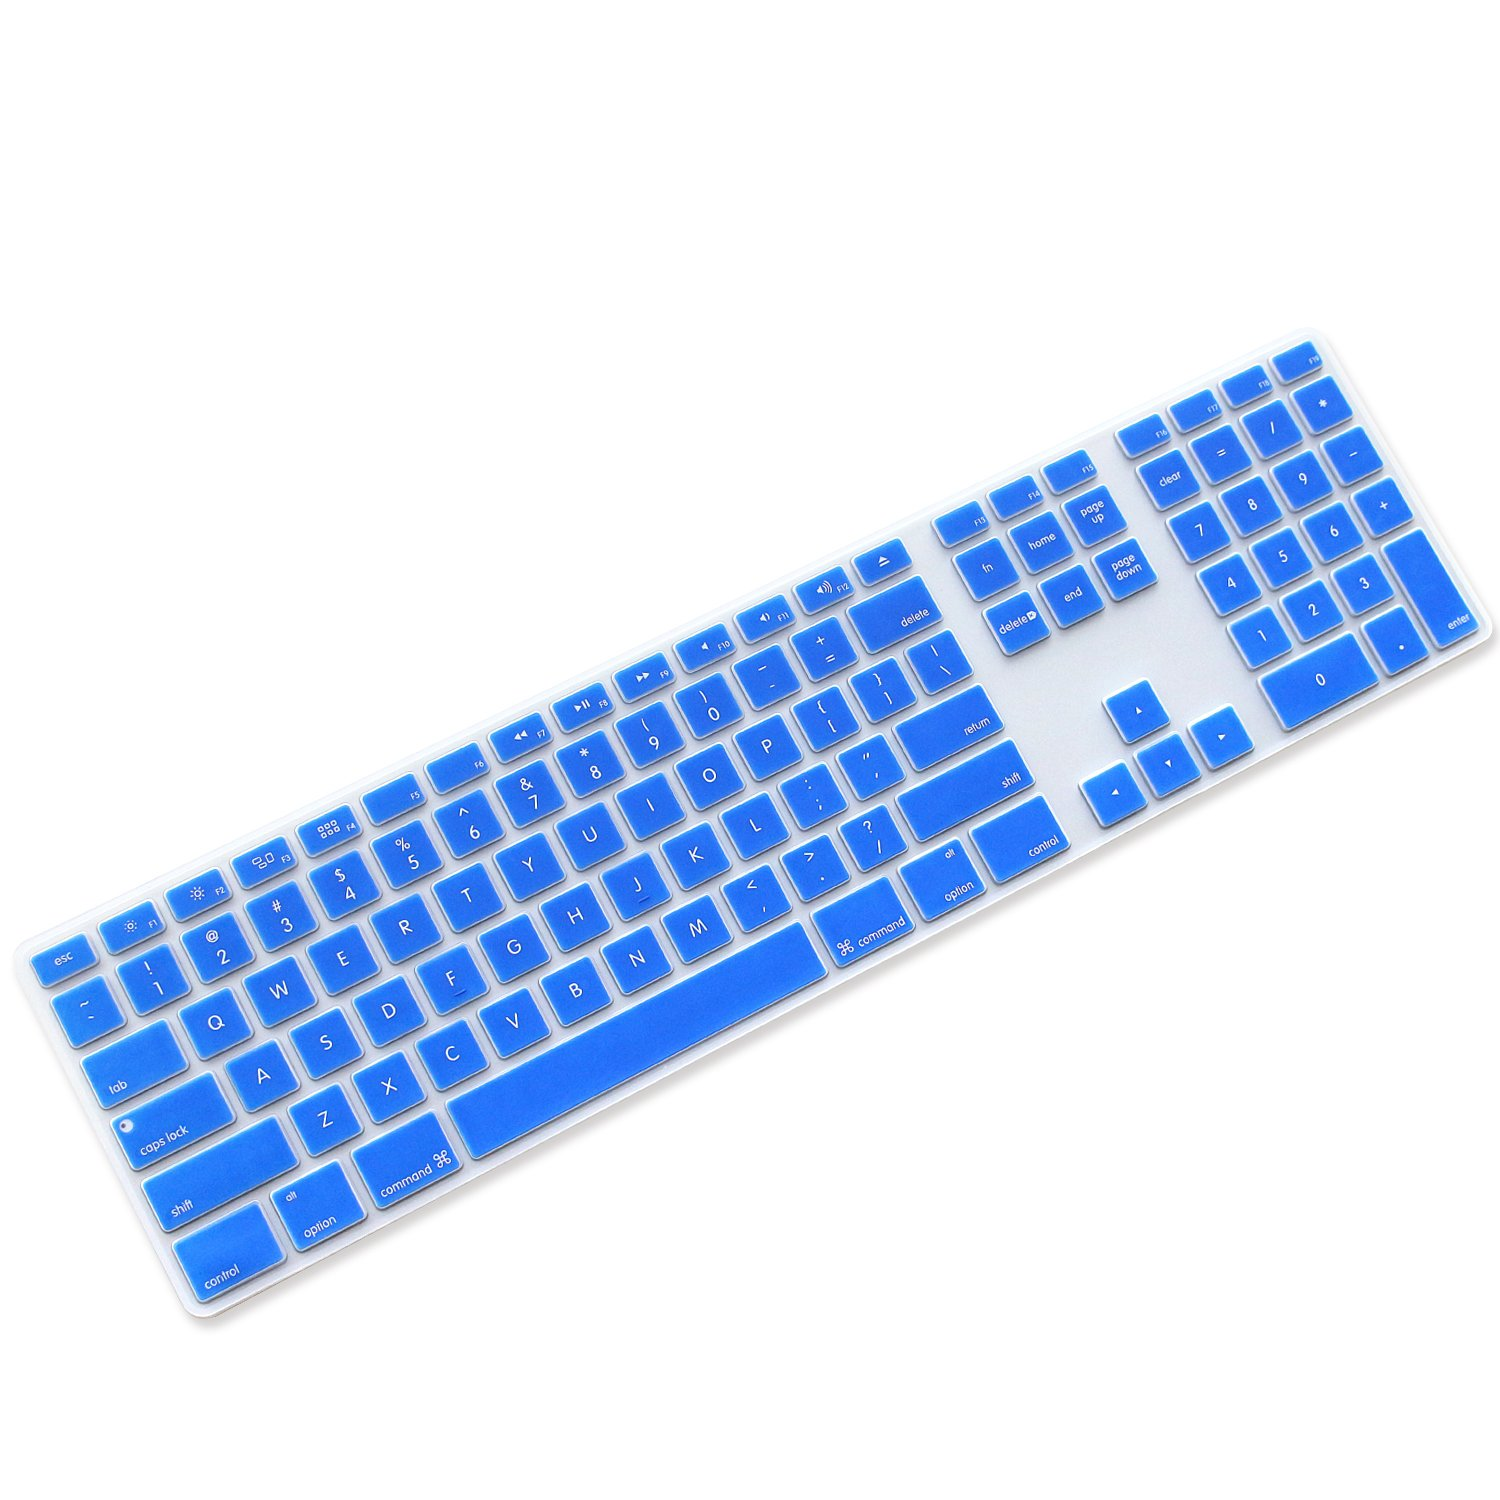 Semi-transparent Clear ProElife Ultra Thin Silicone Full Size Wireless Bluetooth Numeric Keyboard Cover Skin for 2017 Released Apple iMac Magic Keyboard with Numeric Keypad MQ052LL//A A1843 US Layout